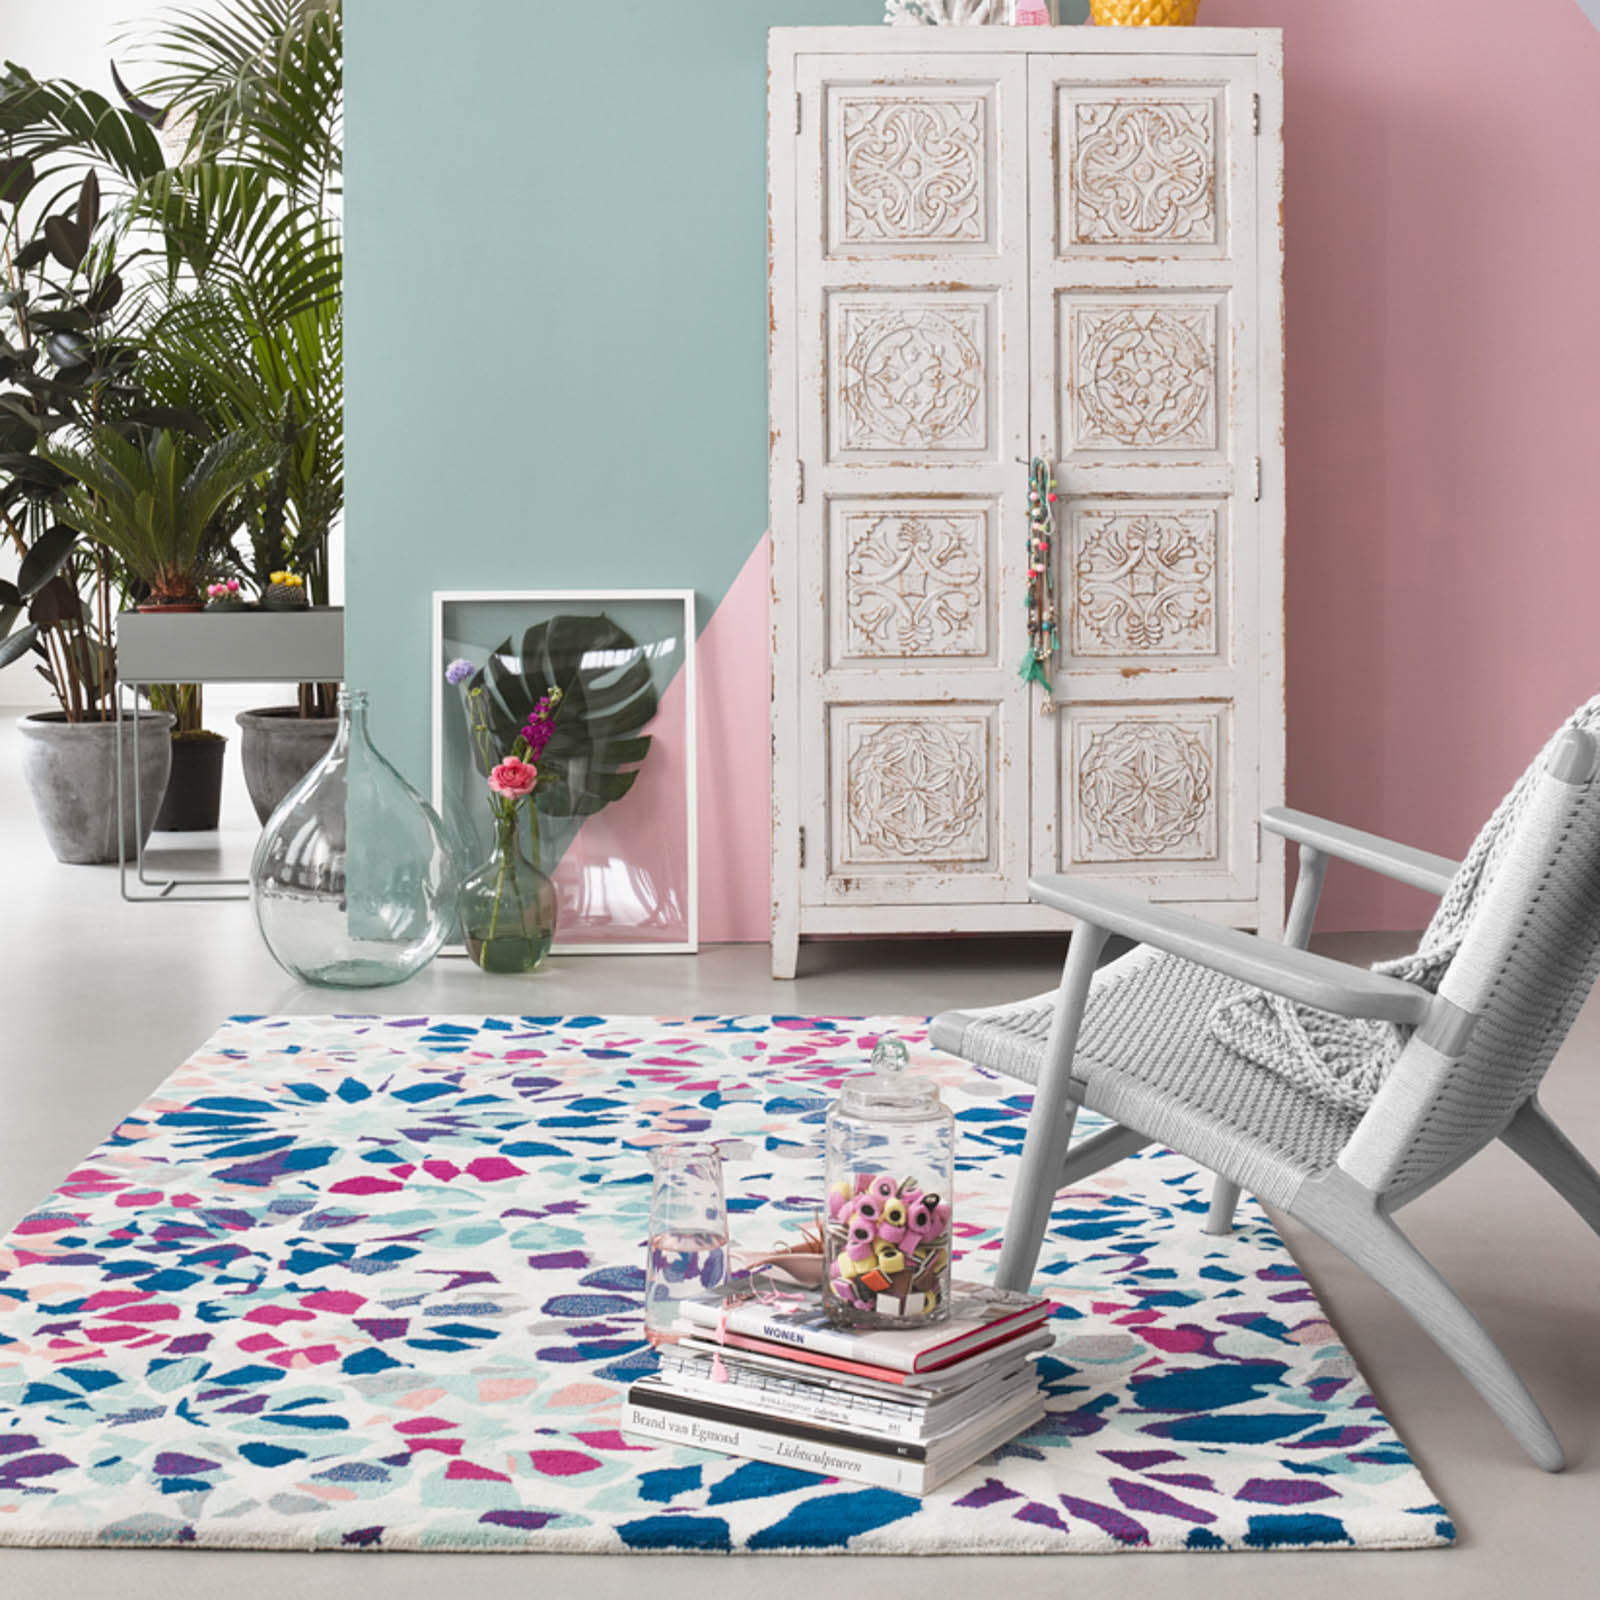 Accessorize Home: Brand-New Rug Collection